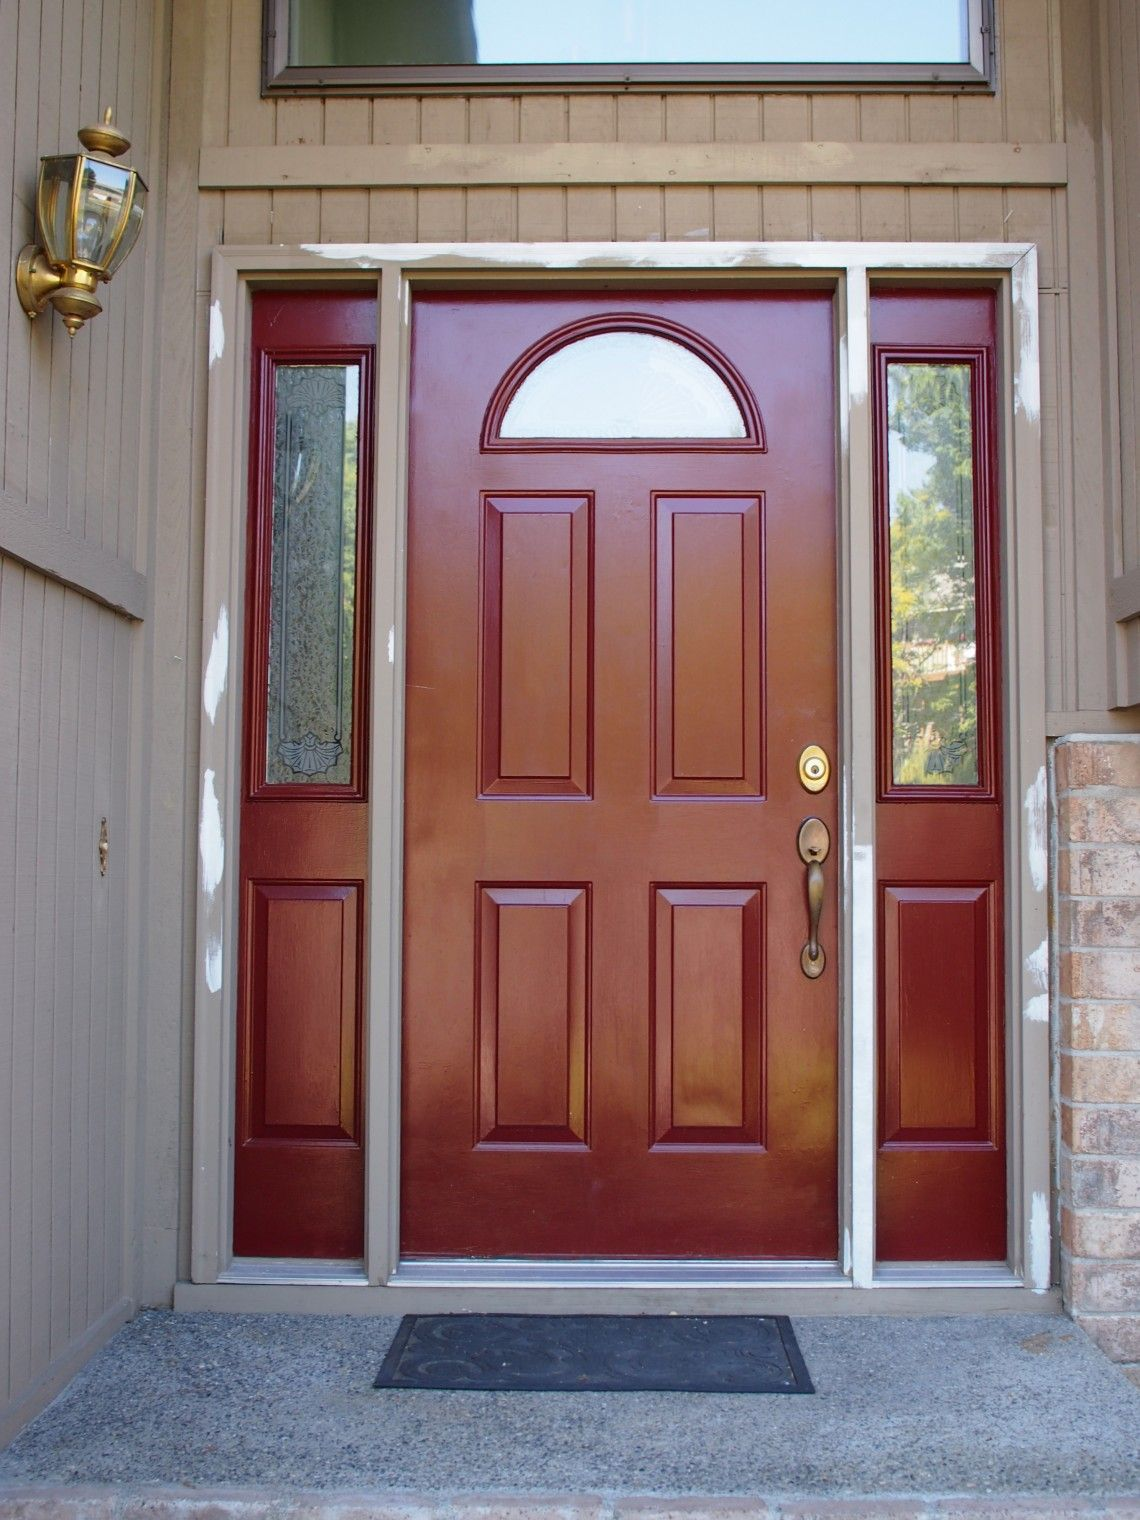 677803b2c605056951899ed026ae7e72 Painted Front Door Designs For Homes on front door red brick homes, painted gypsy door, back doors for homes, painted glass doors, painted garden doors, painted outside doors, painted entry doors, painted doors ideas, green painted homes, painted garage doors, rear doors for homes, painted stable doors for homes,